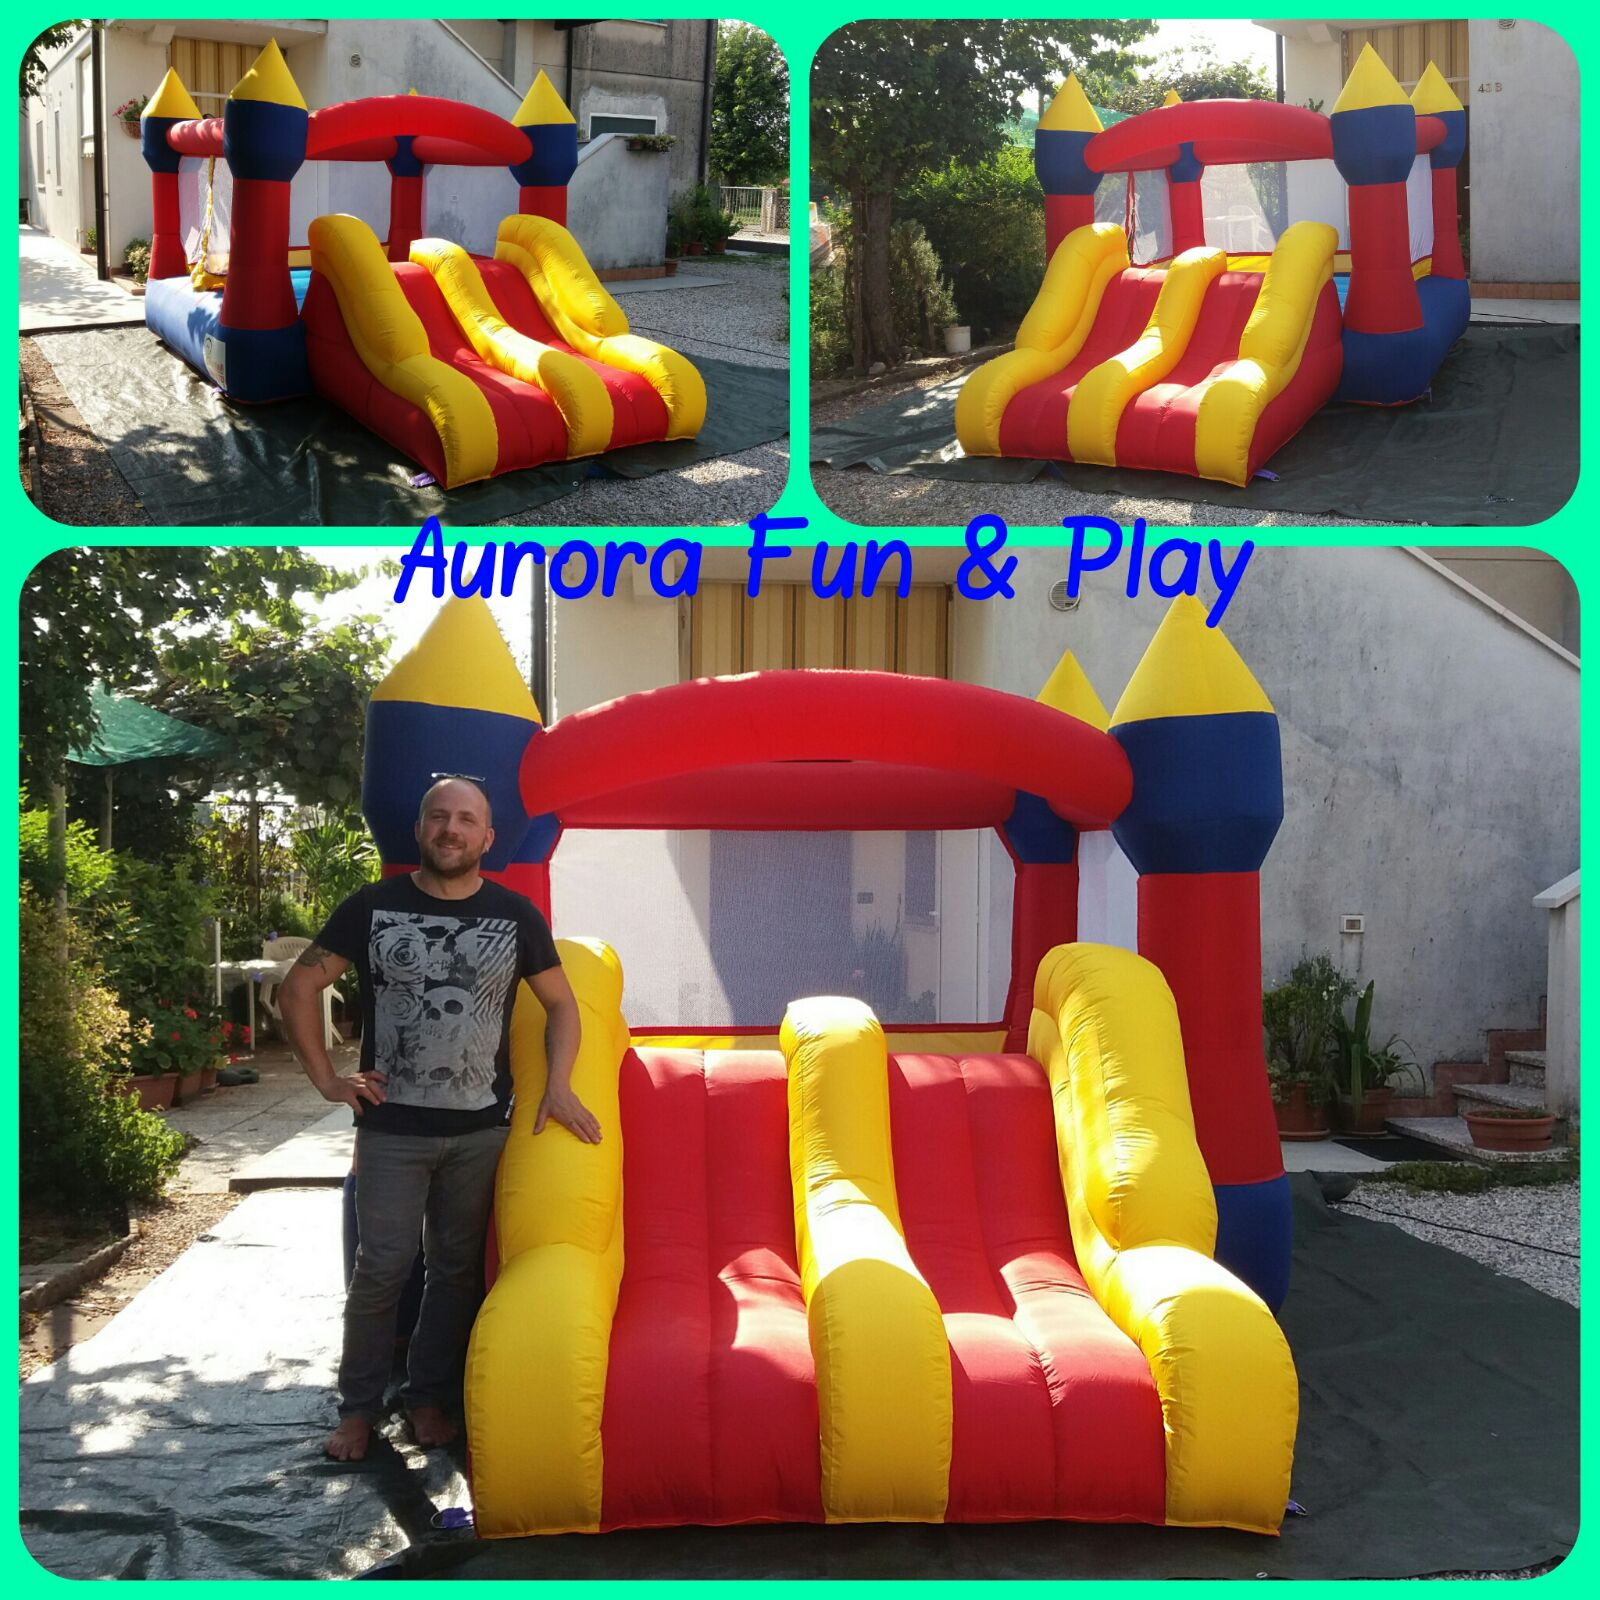 Aurora-Fun-And-Play-Noleggio-Gonfiabili